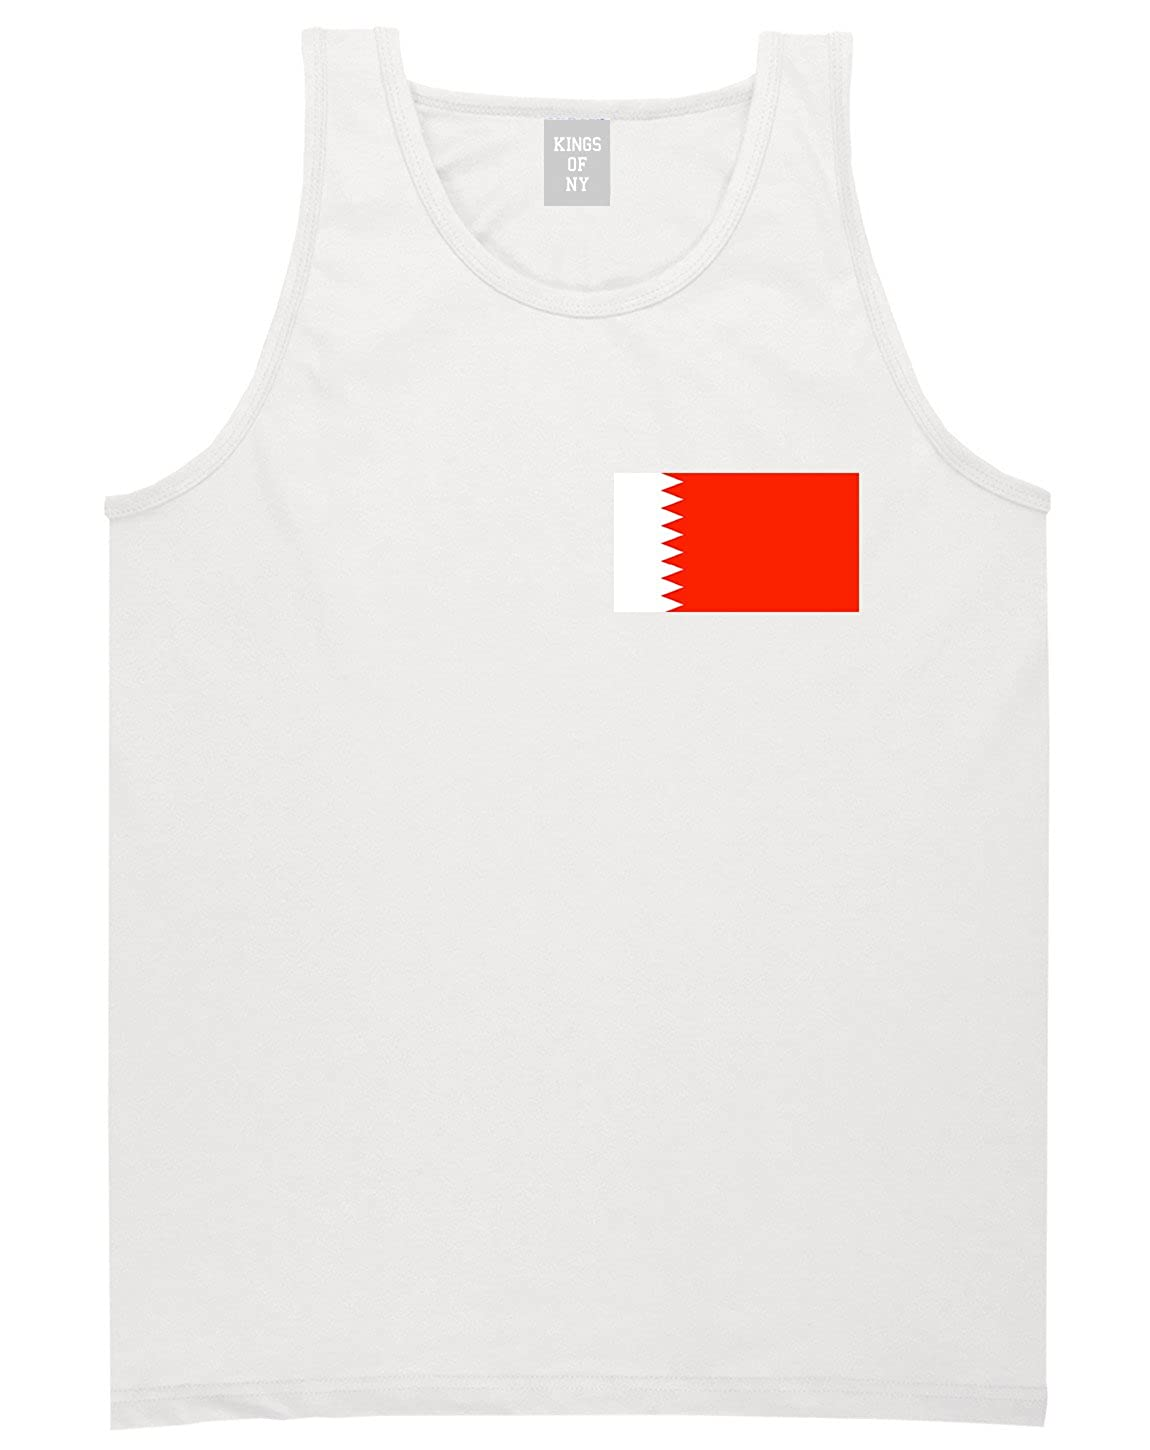 Bahrain Flag Country Chest Tank Top Shirt